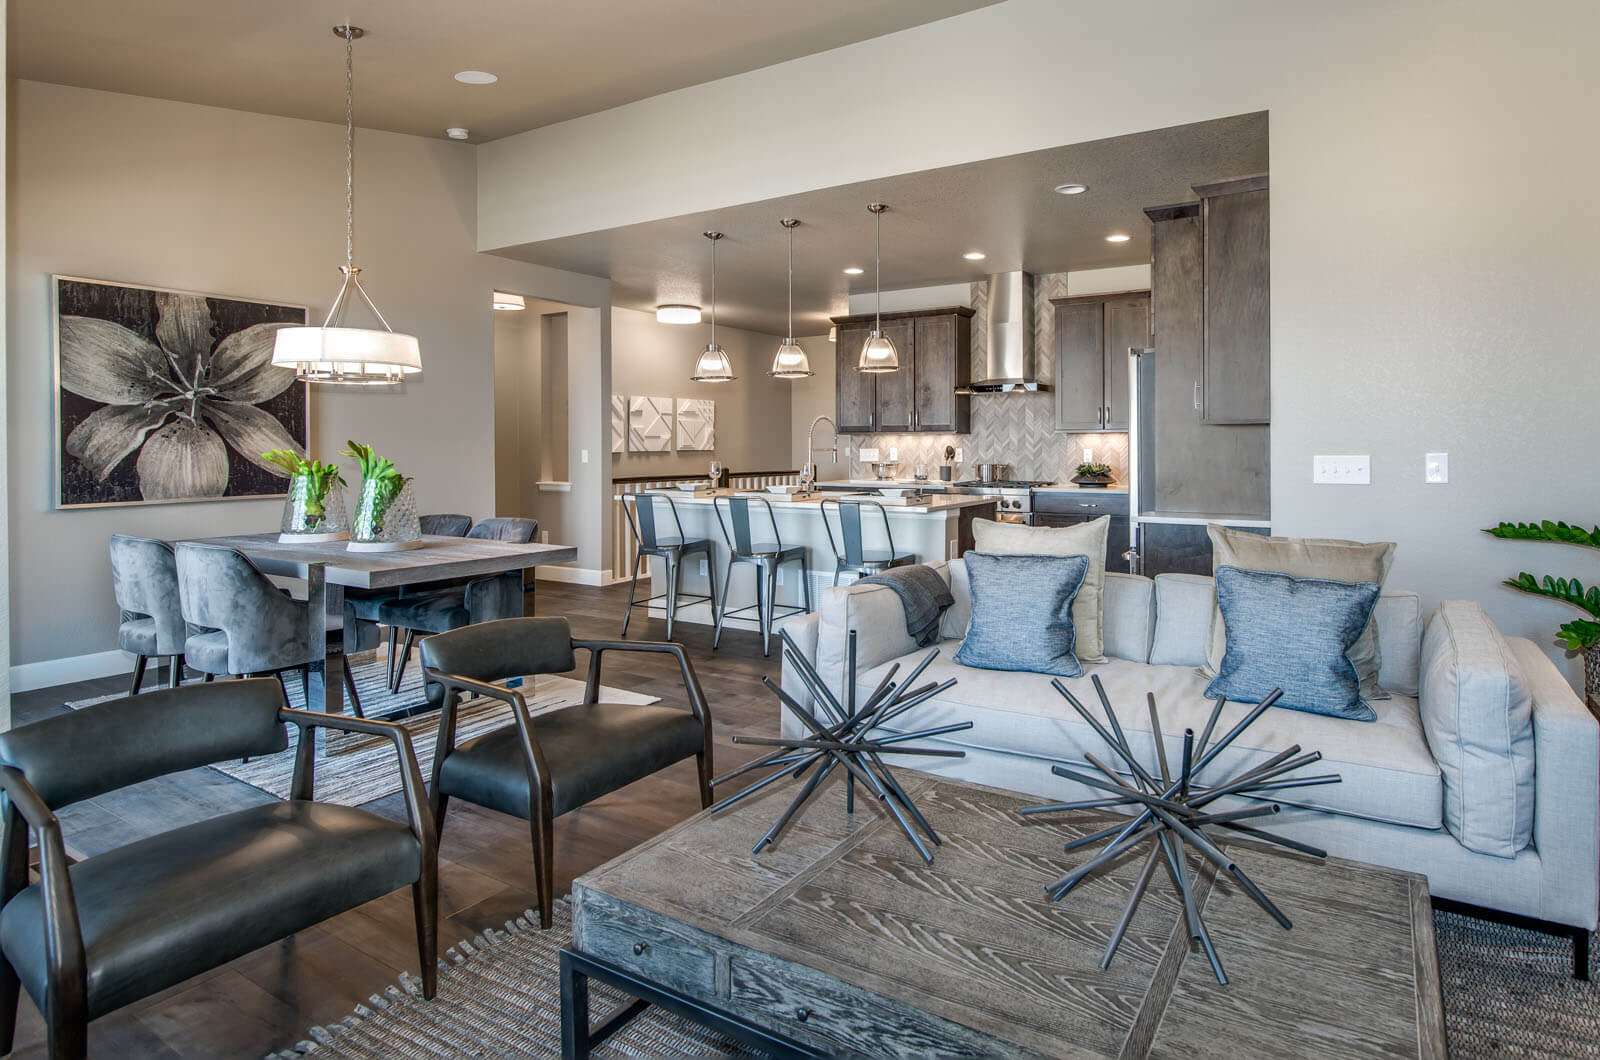 New Denver  Model Home Willow in Lincoln Creek, located at 6845 Zebra Grass Lane, Parker, CO Built By Cardel Homes Denver